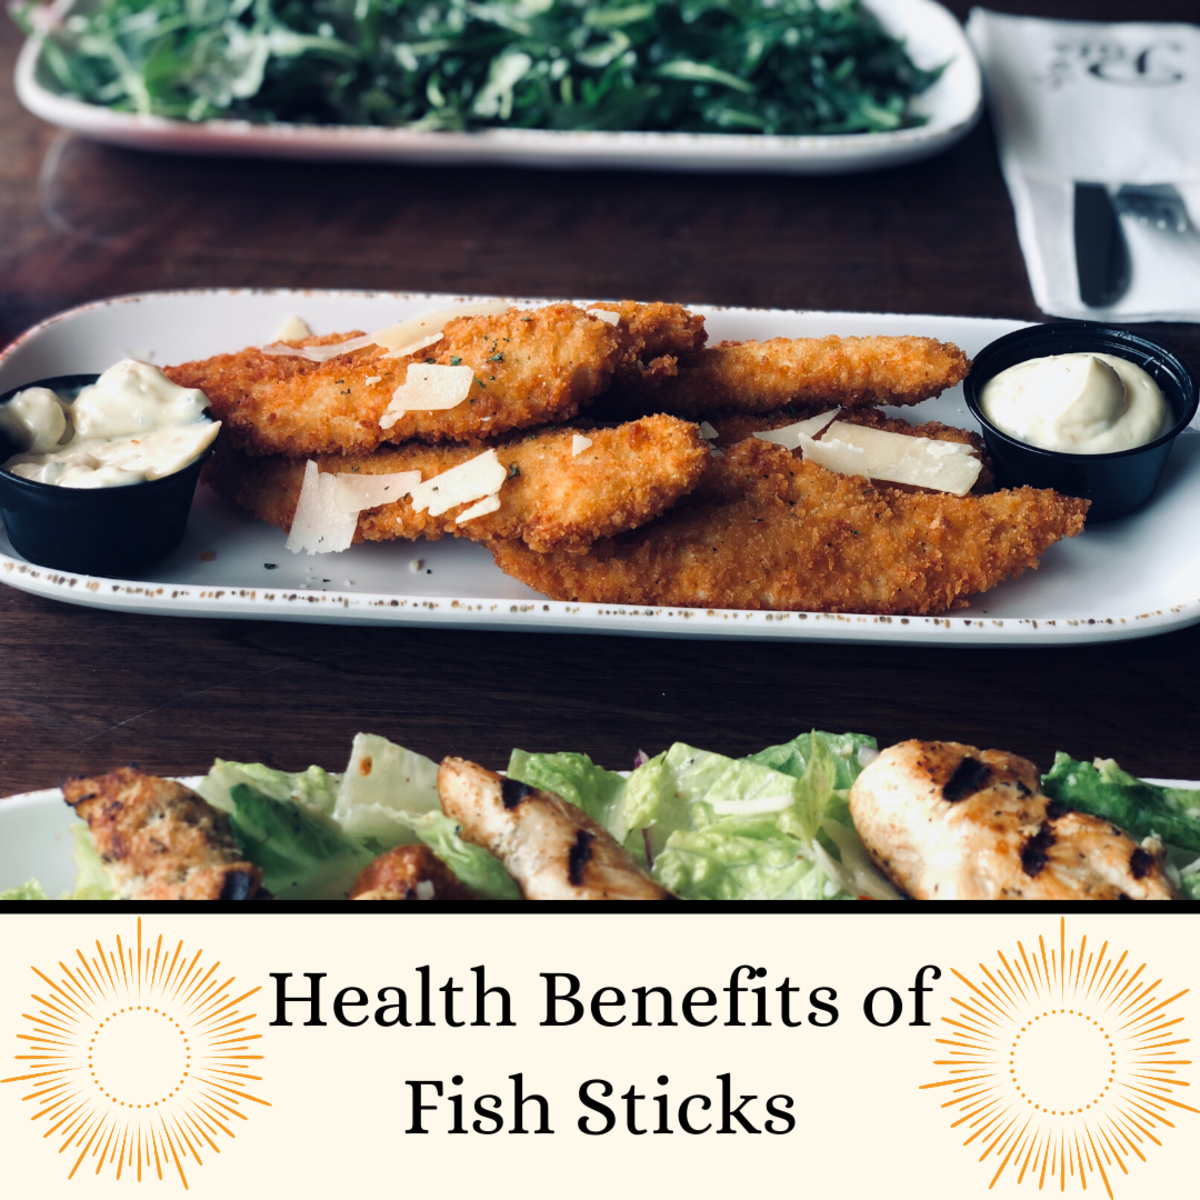 Fish fingers have surprising nutrients. Read on to learn more.